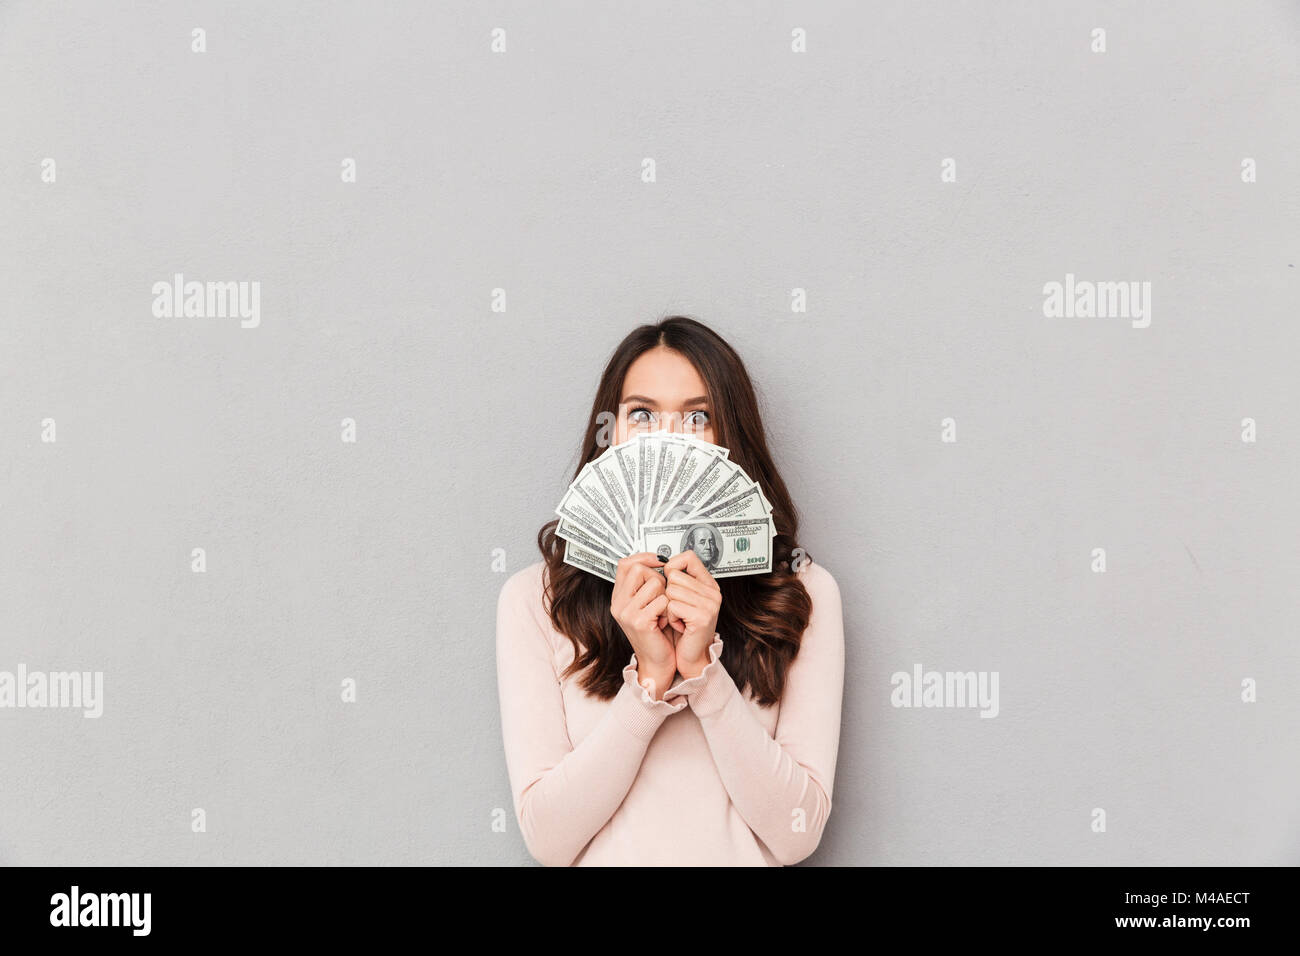 Image of lucky happy woman covering her face with fan of 100 dollar bills, having lots of cash money over gray wall - Stock Image